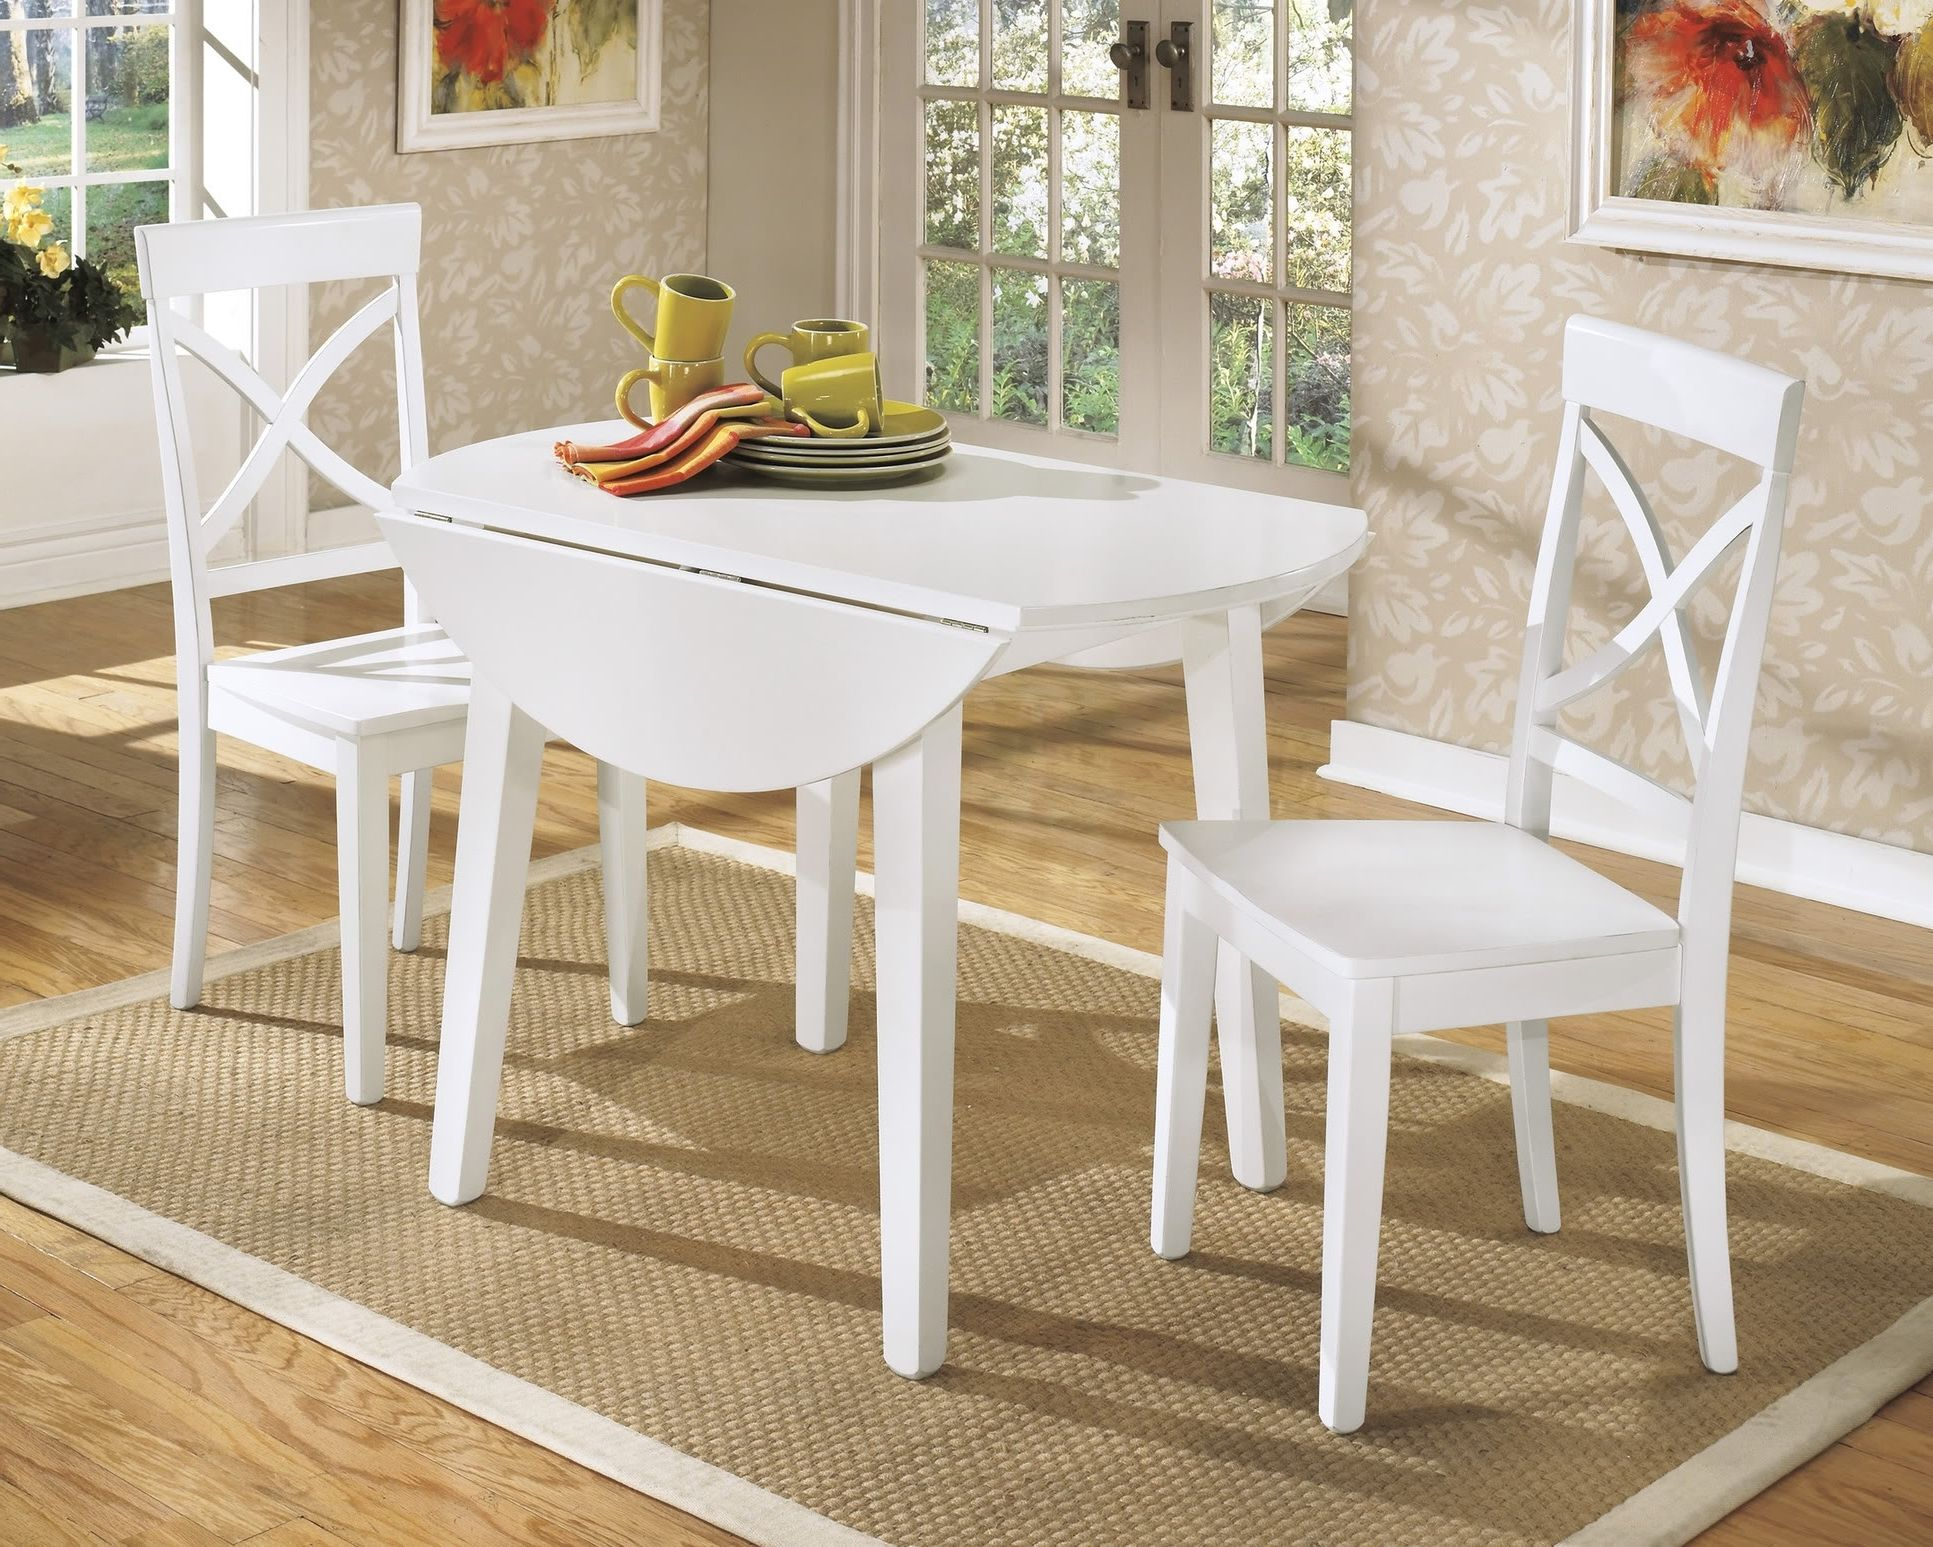 Unique Painted Dining Tables Allenranch